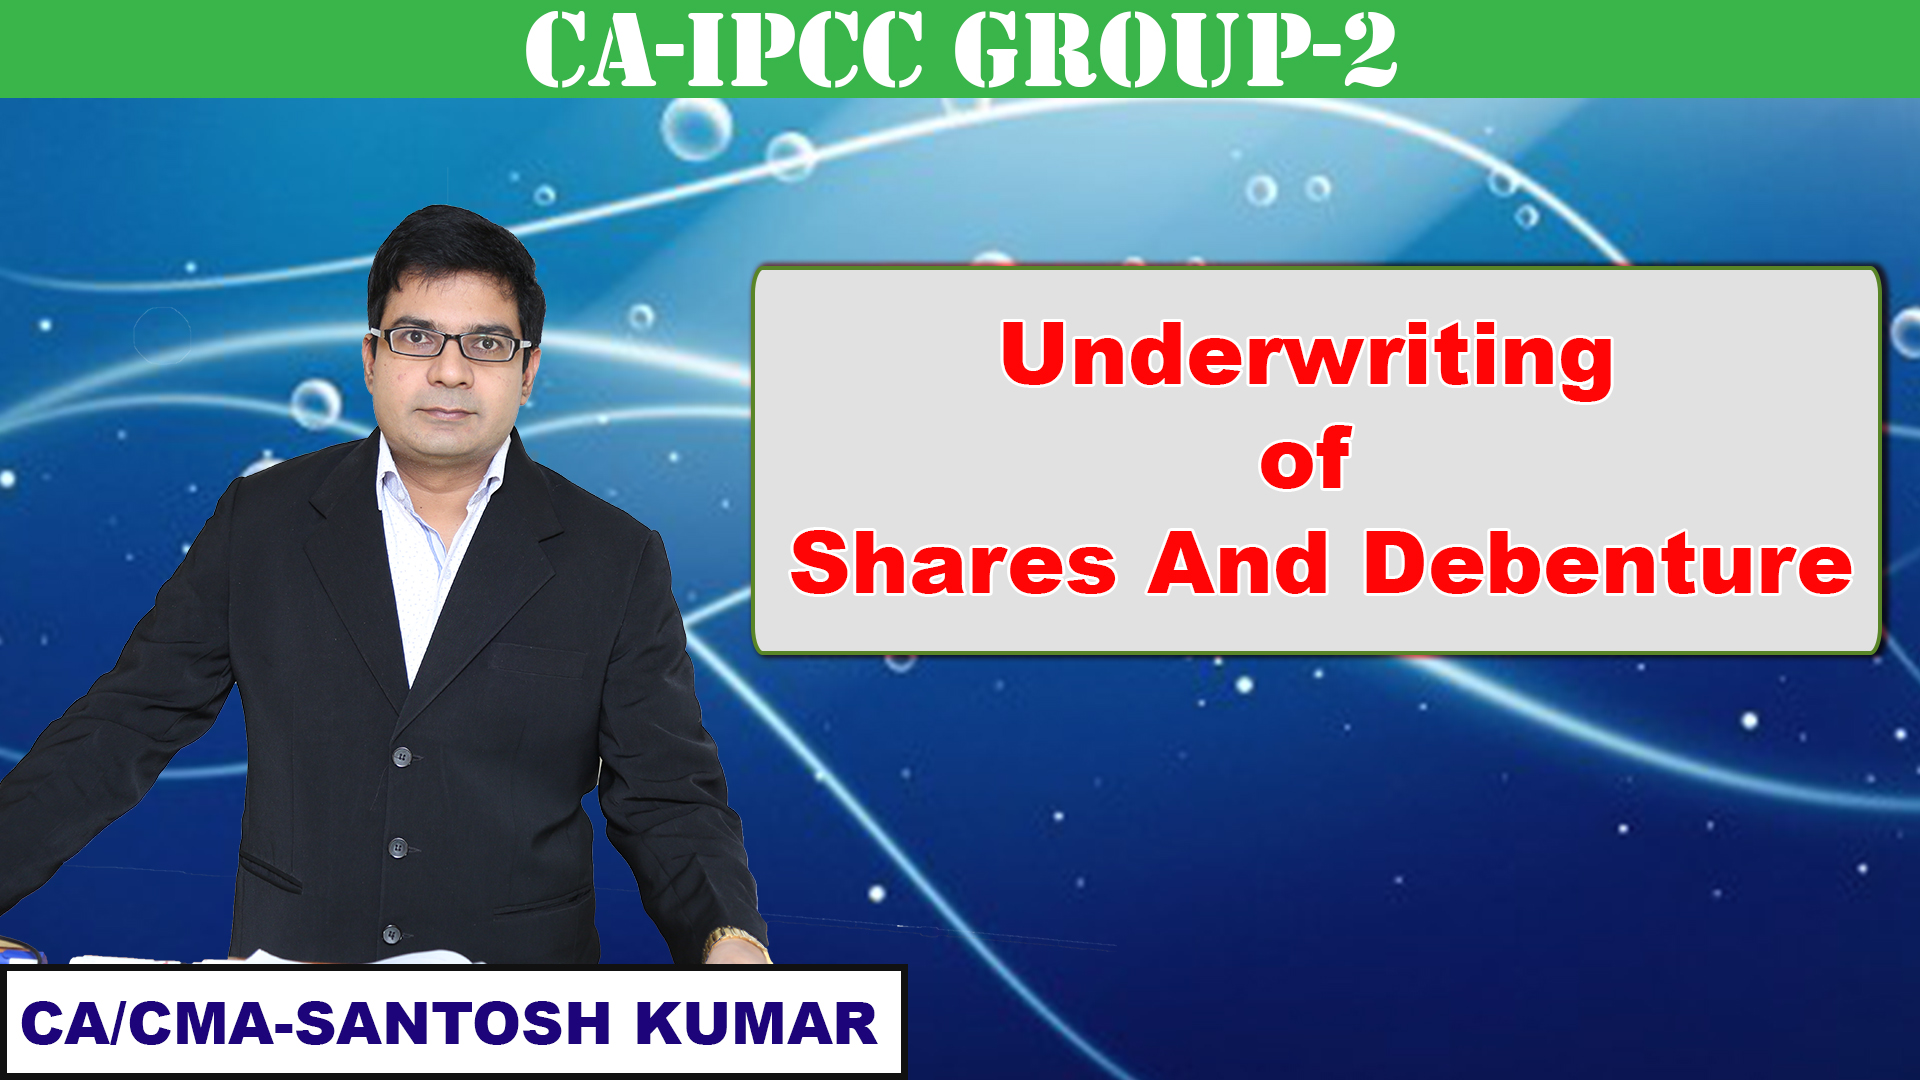 Underwriting Of Shares And Debentures